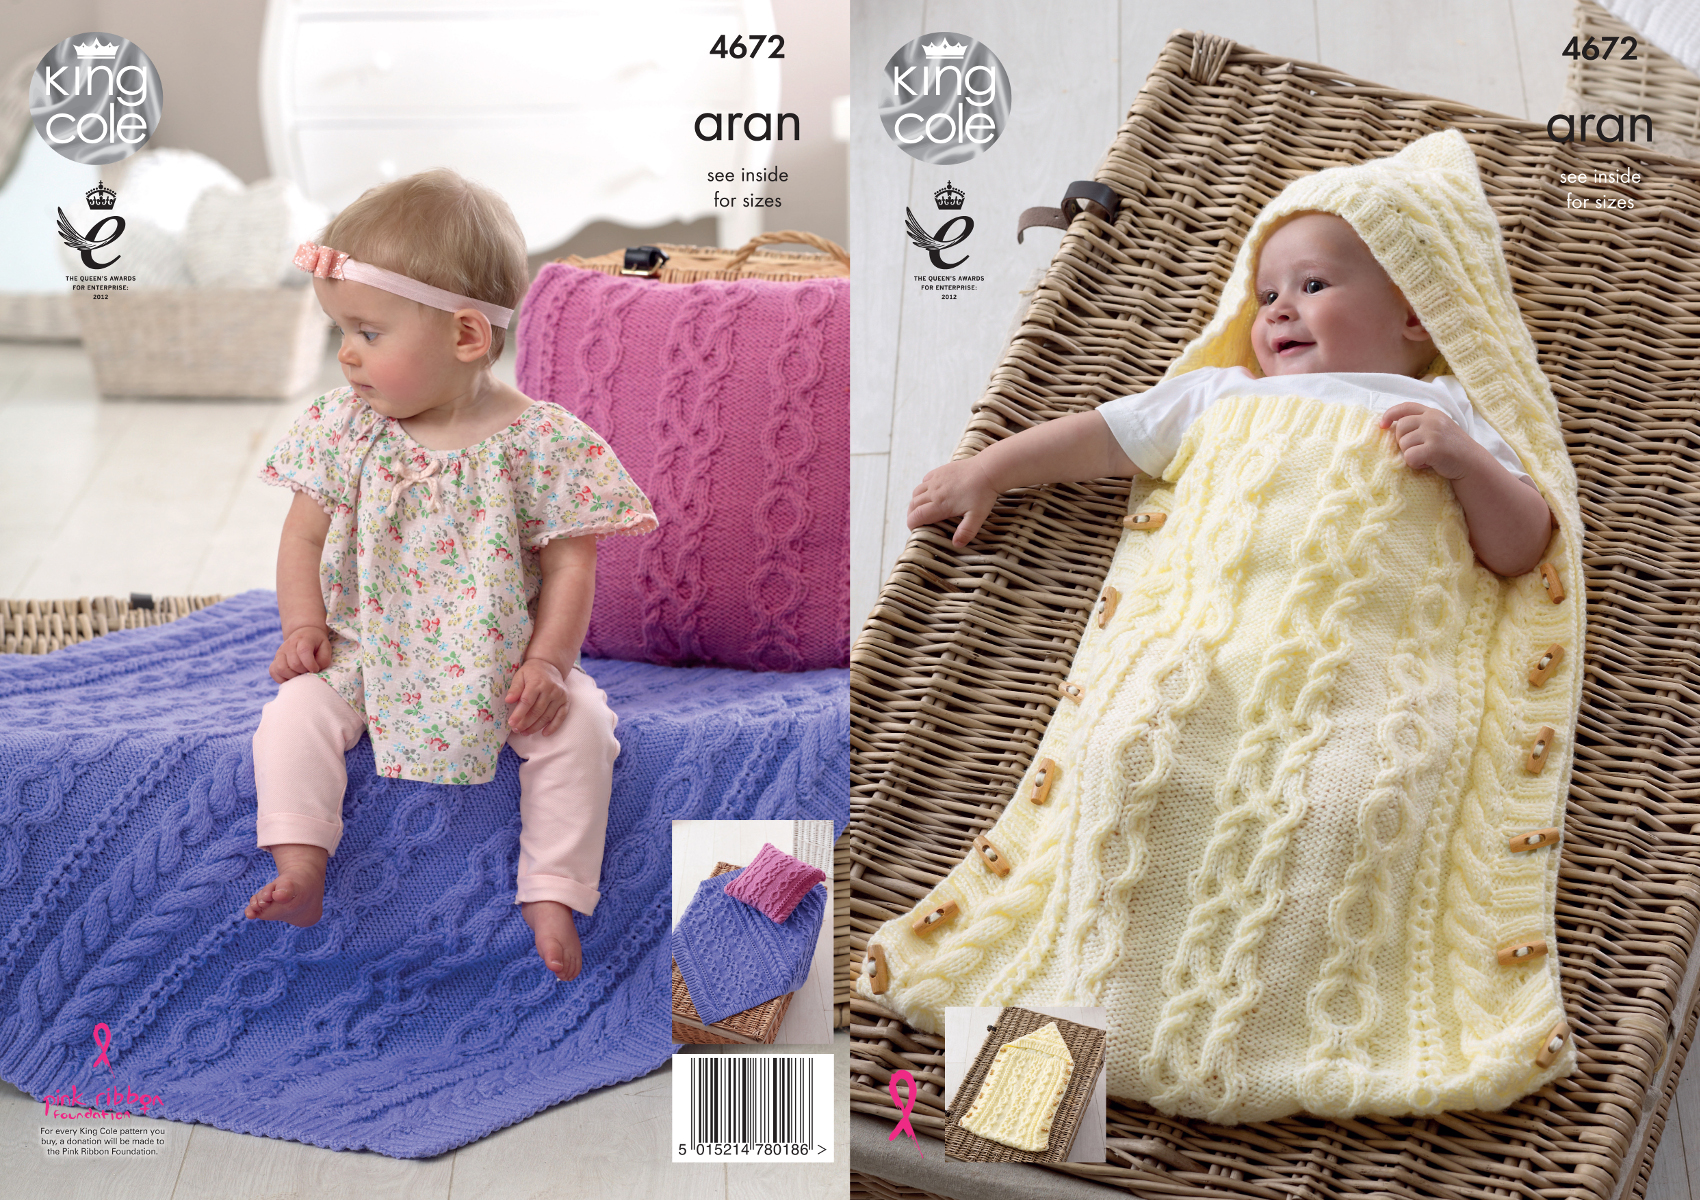 Knitting pattern king cole baby aran cabled sleeping bag blanket knitting pattern king cole baby aran cabled sleeping bag blanket cushion 4672 bankloansurffo Choice Image